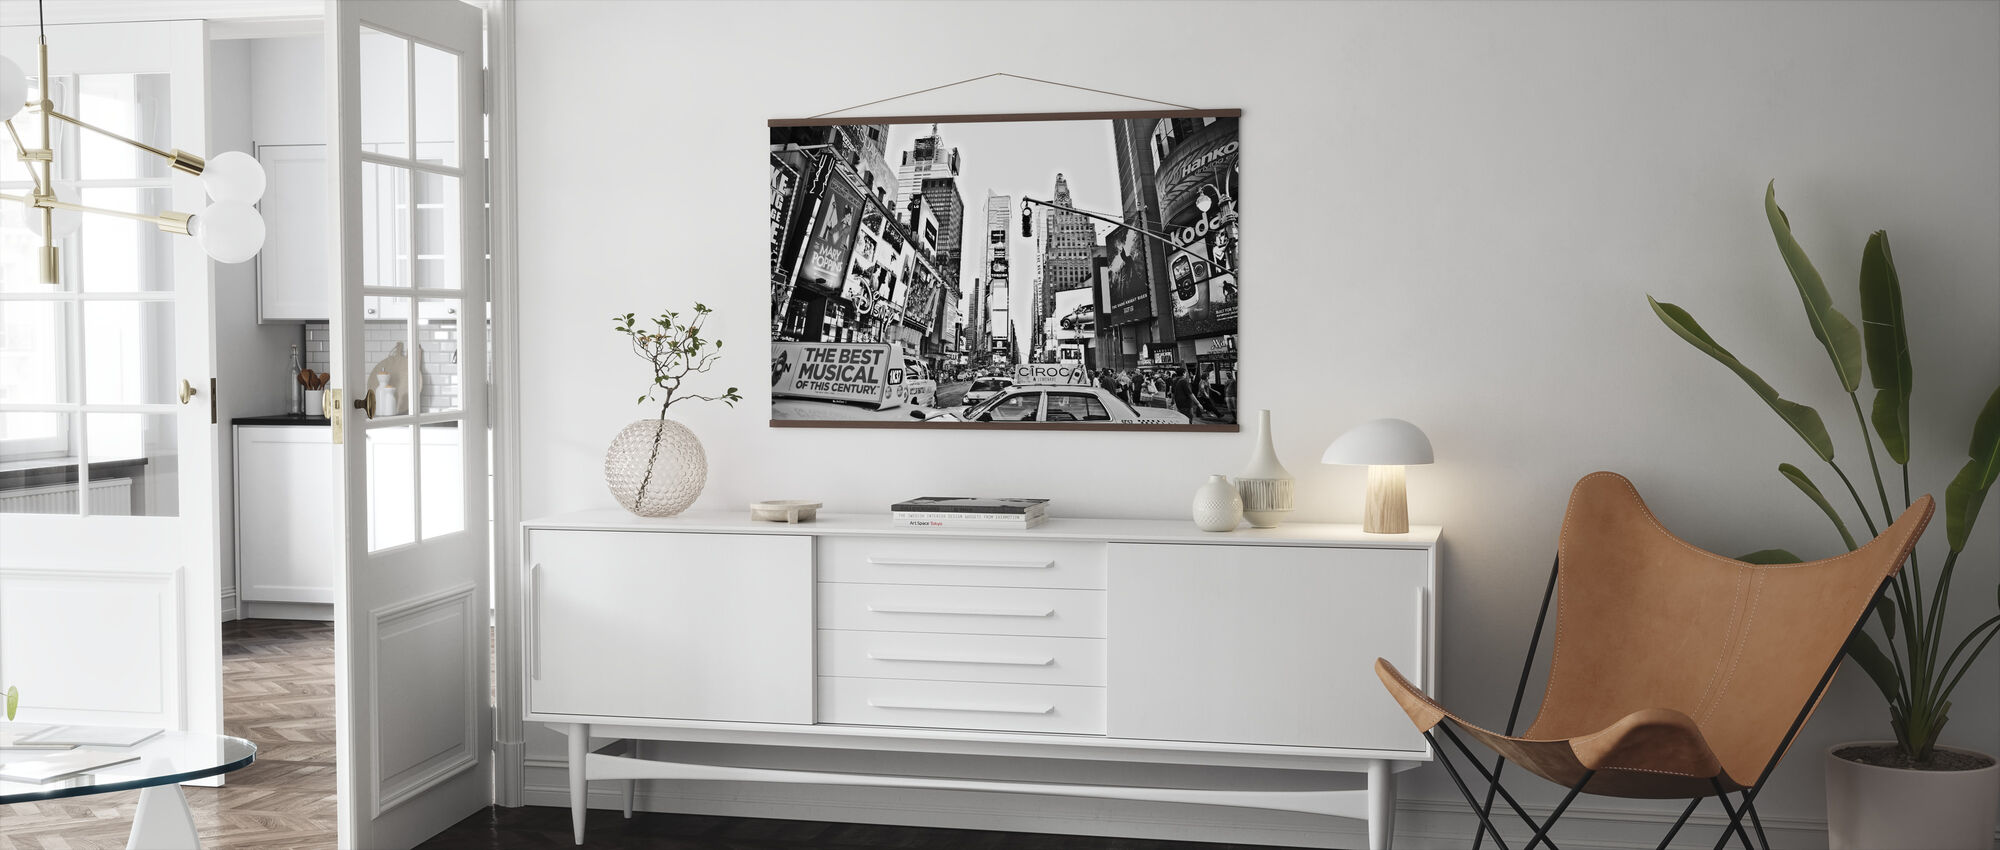 Cabs in Times Square, New York - Poster - Living Room